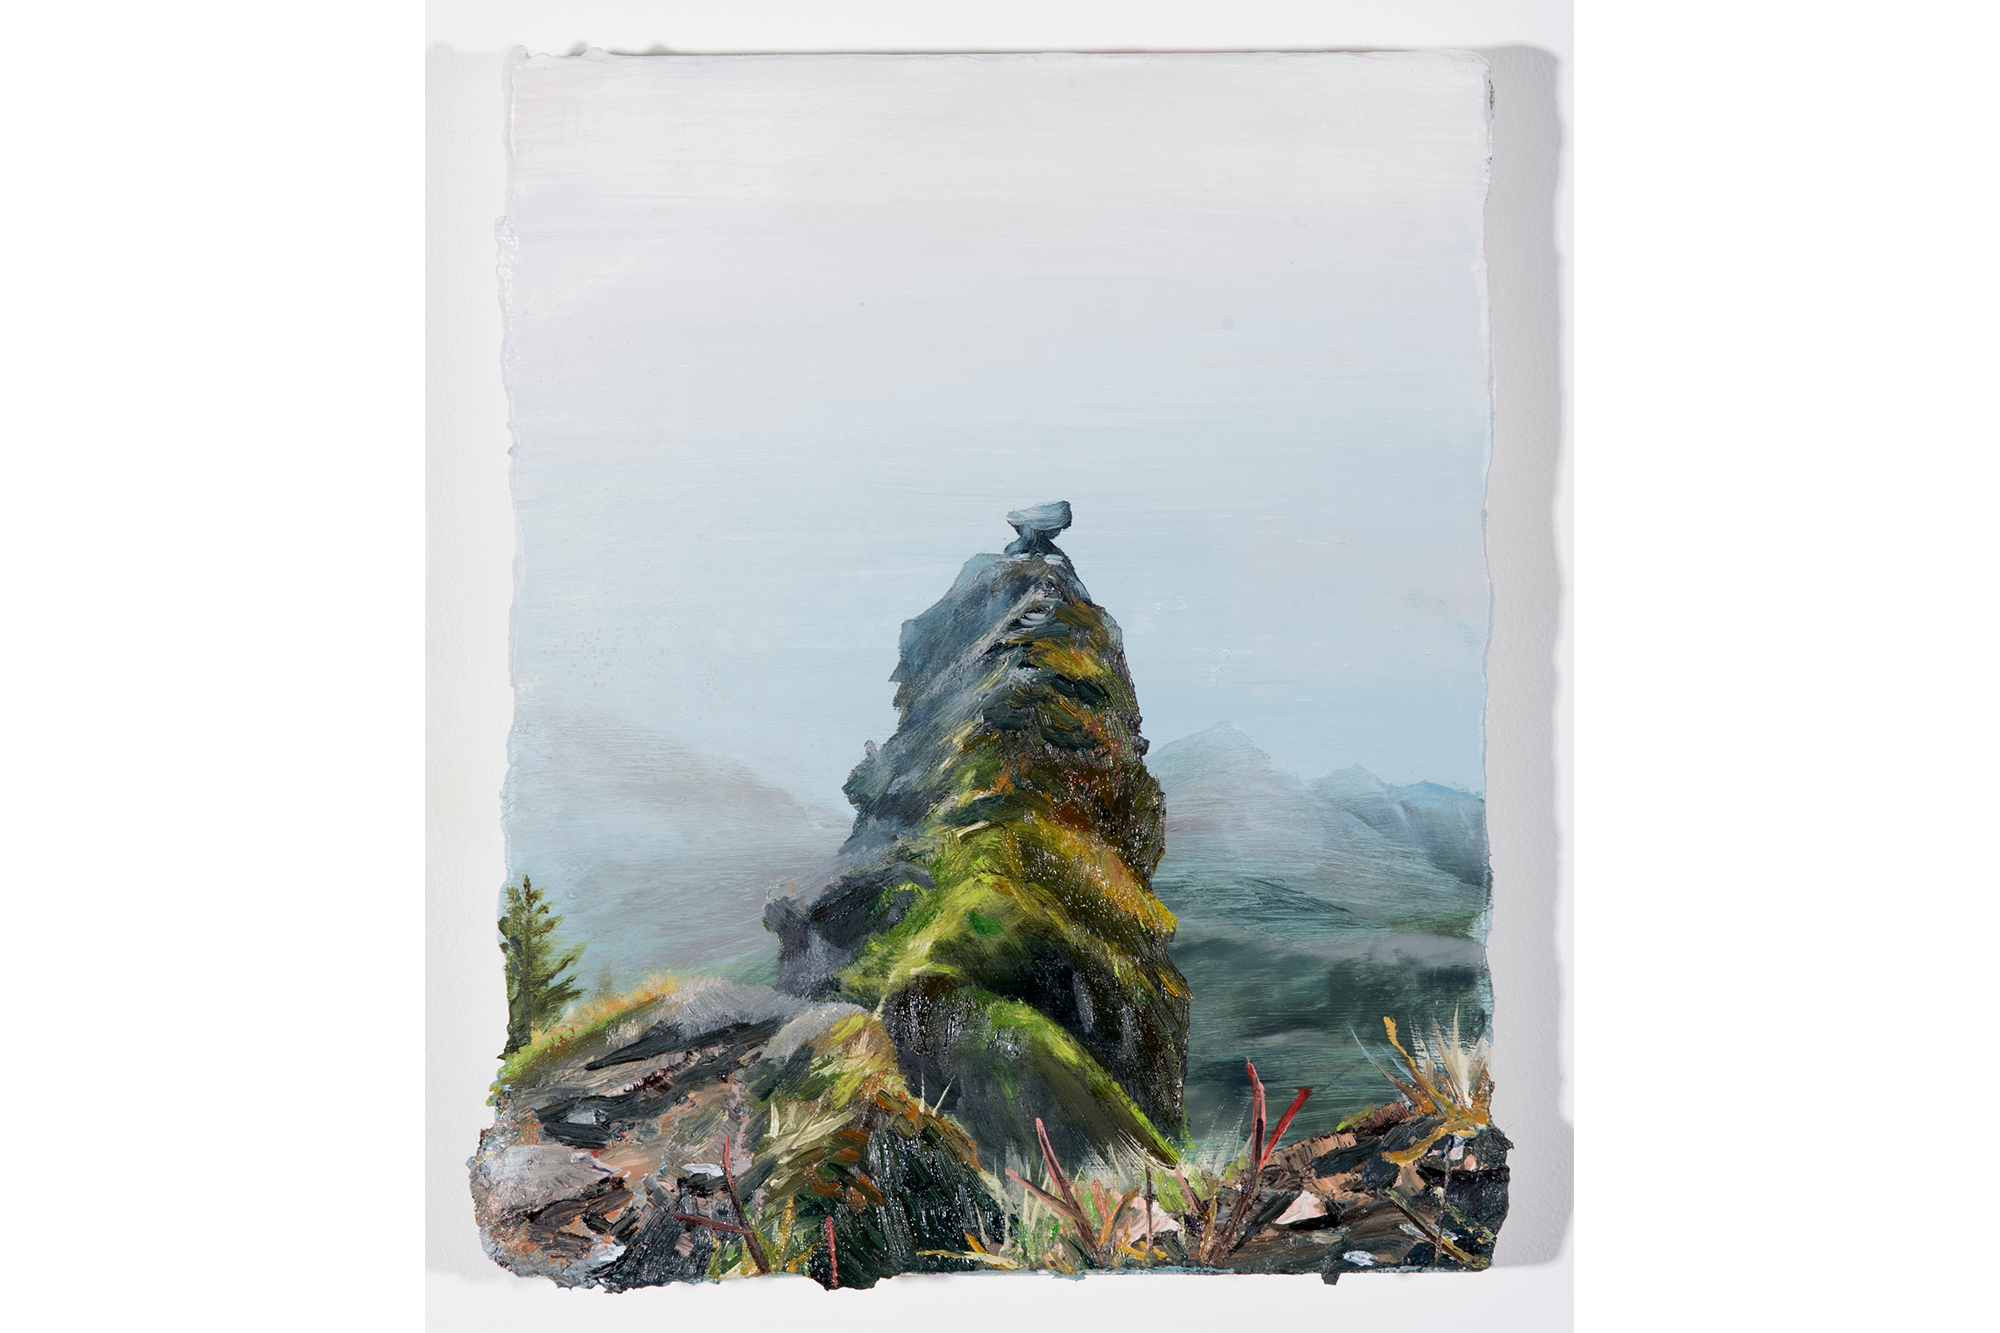 Thick Mist on Saddle Mountain 10 in X 8 in Oil on Canvas